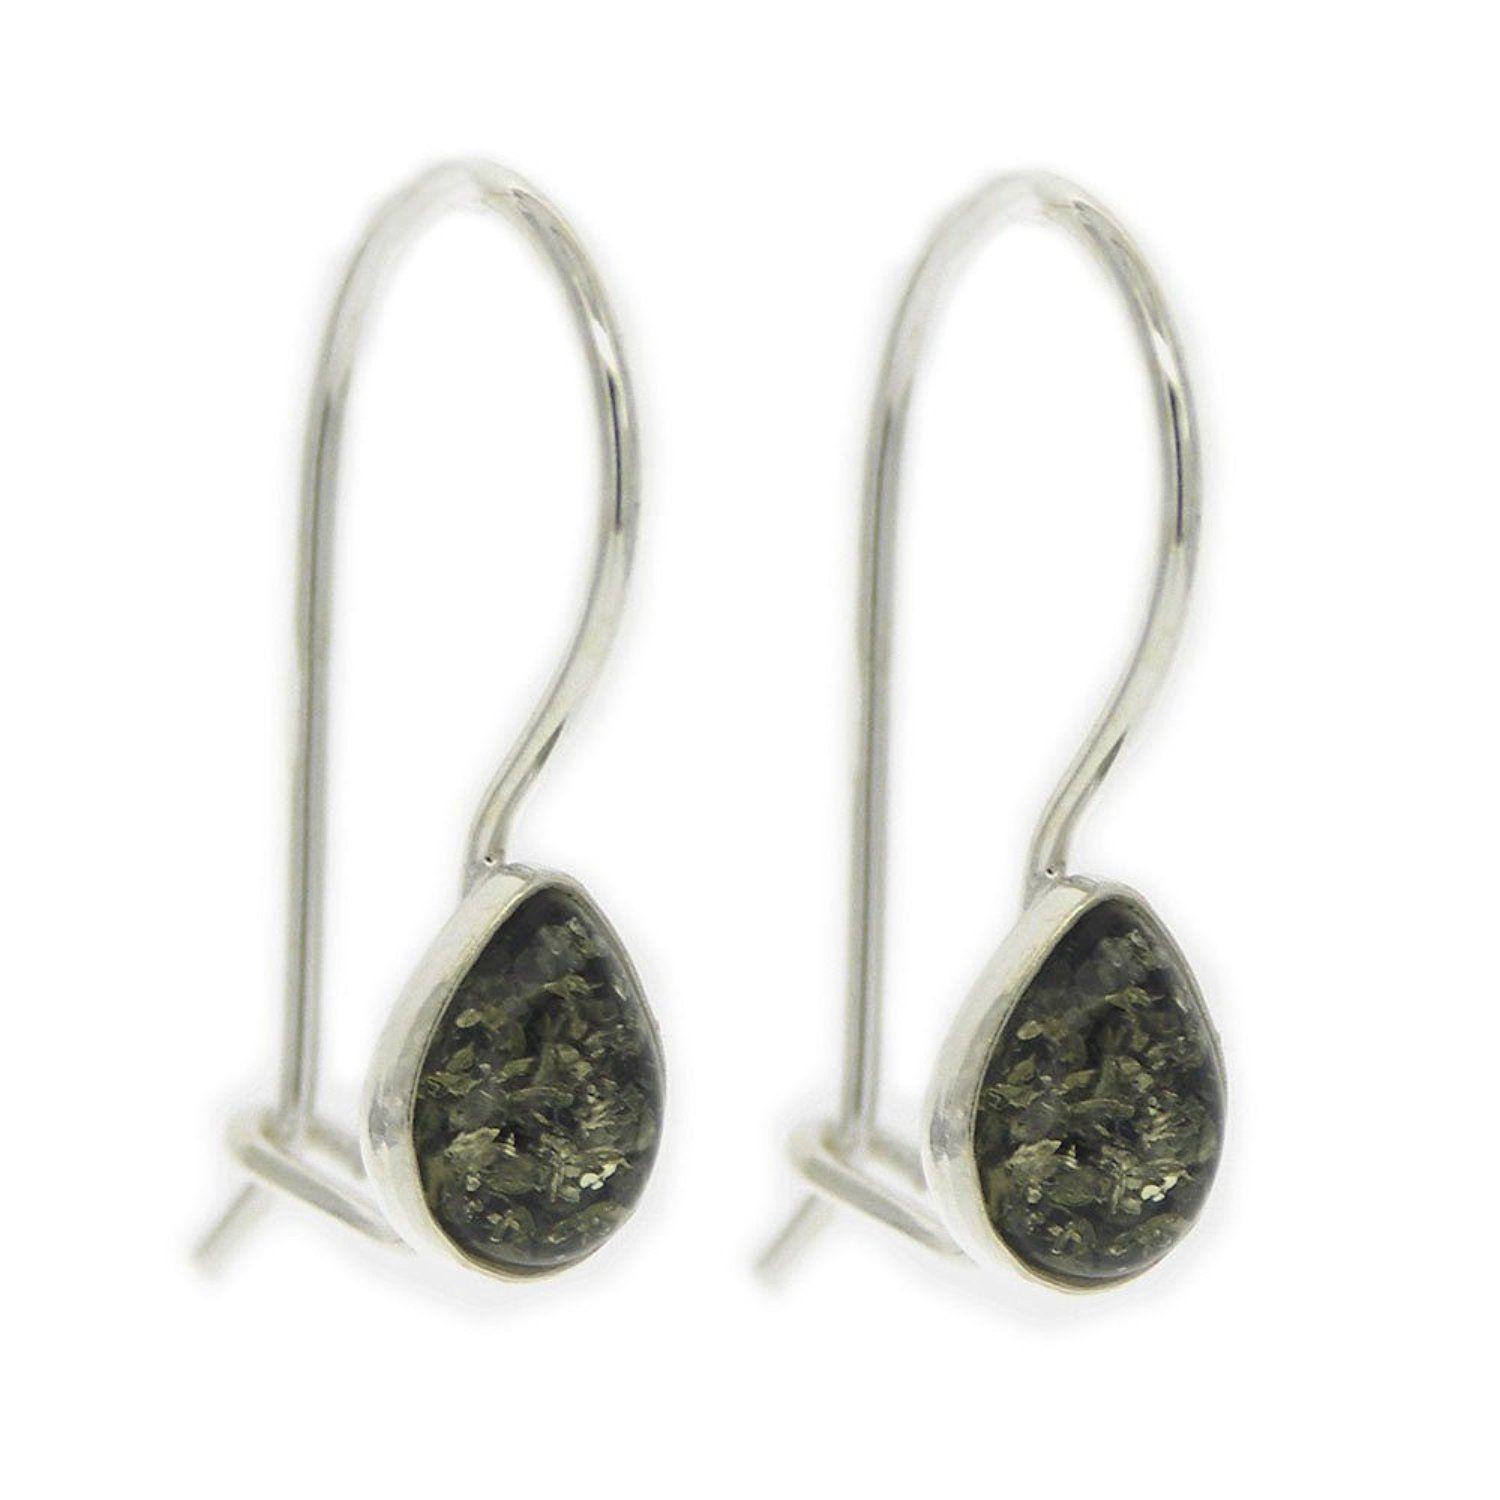 Classic Amber Sterling Silver and Diamond Shaped Green Amber Drop Earrings with Fixed Hook and Safety Catch J4NrWgV2Os